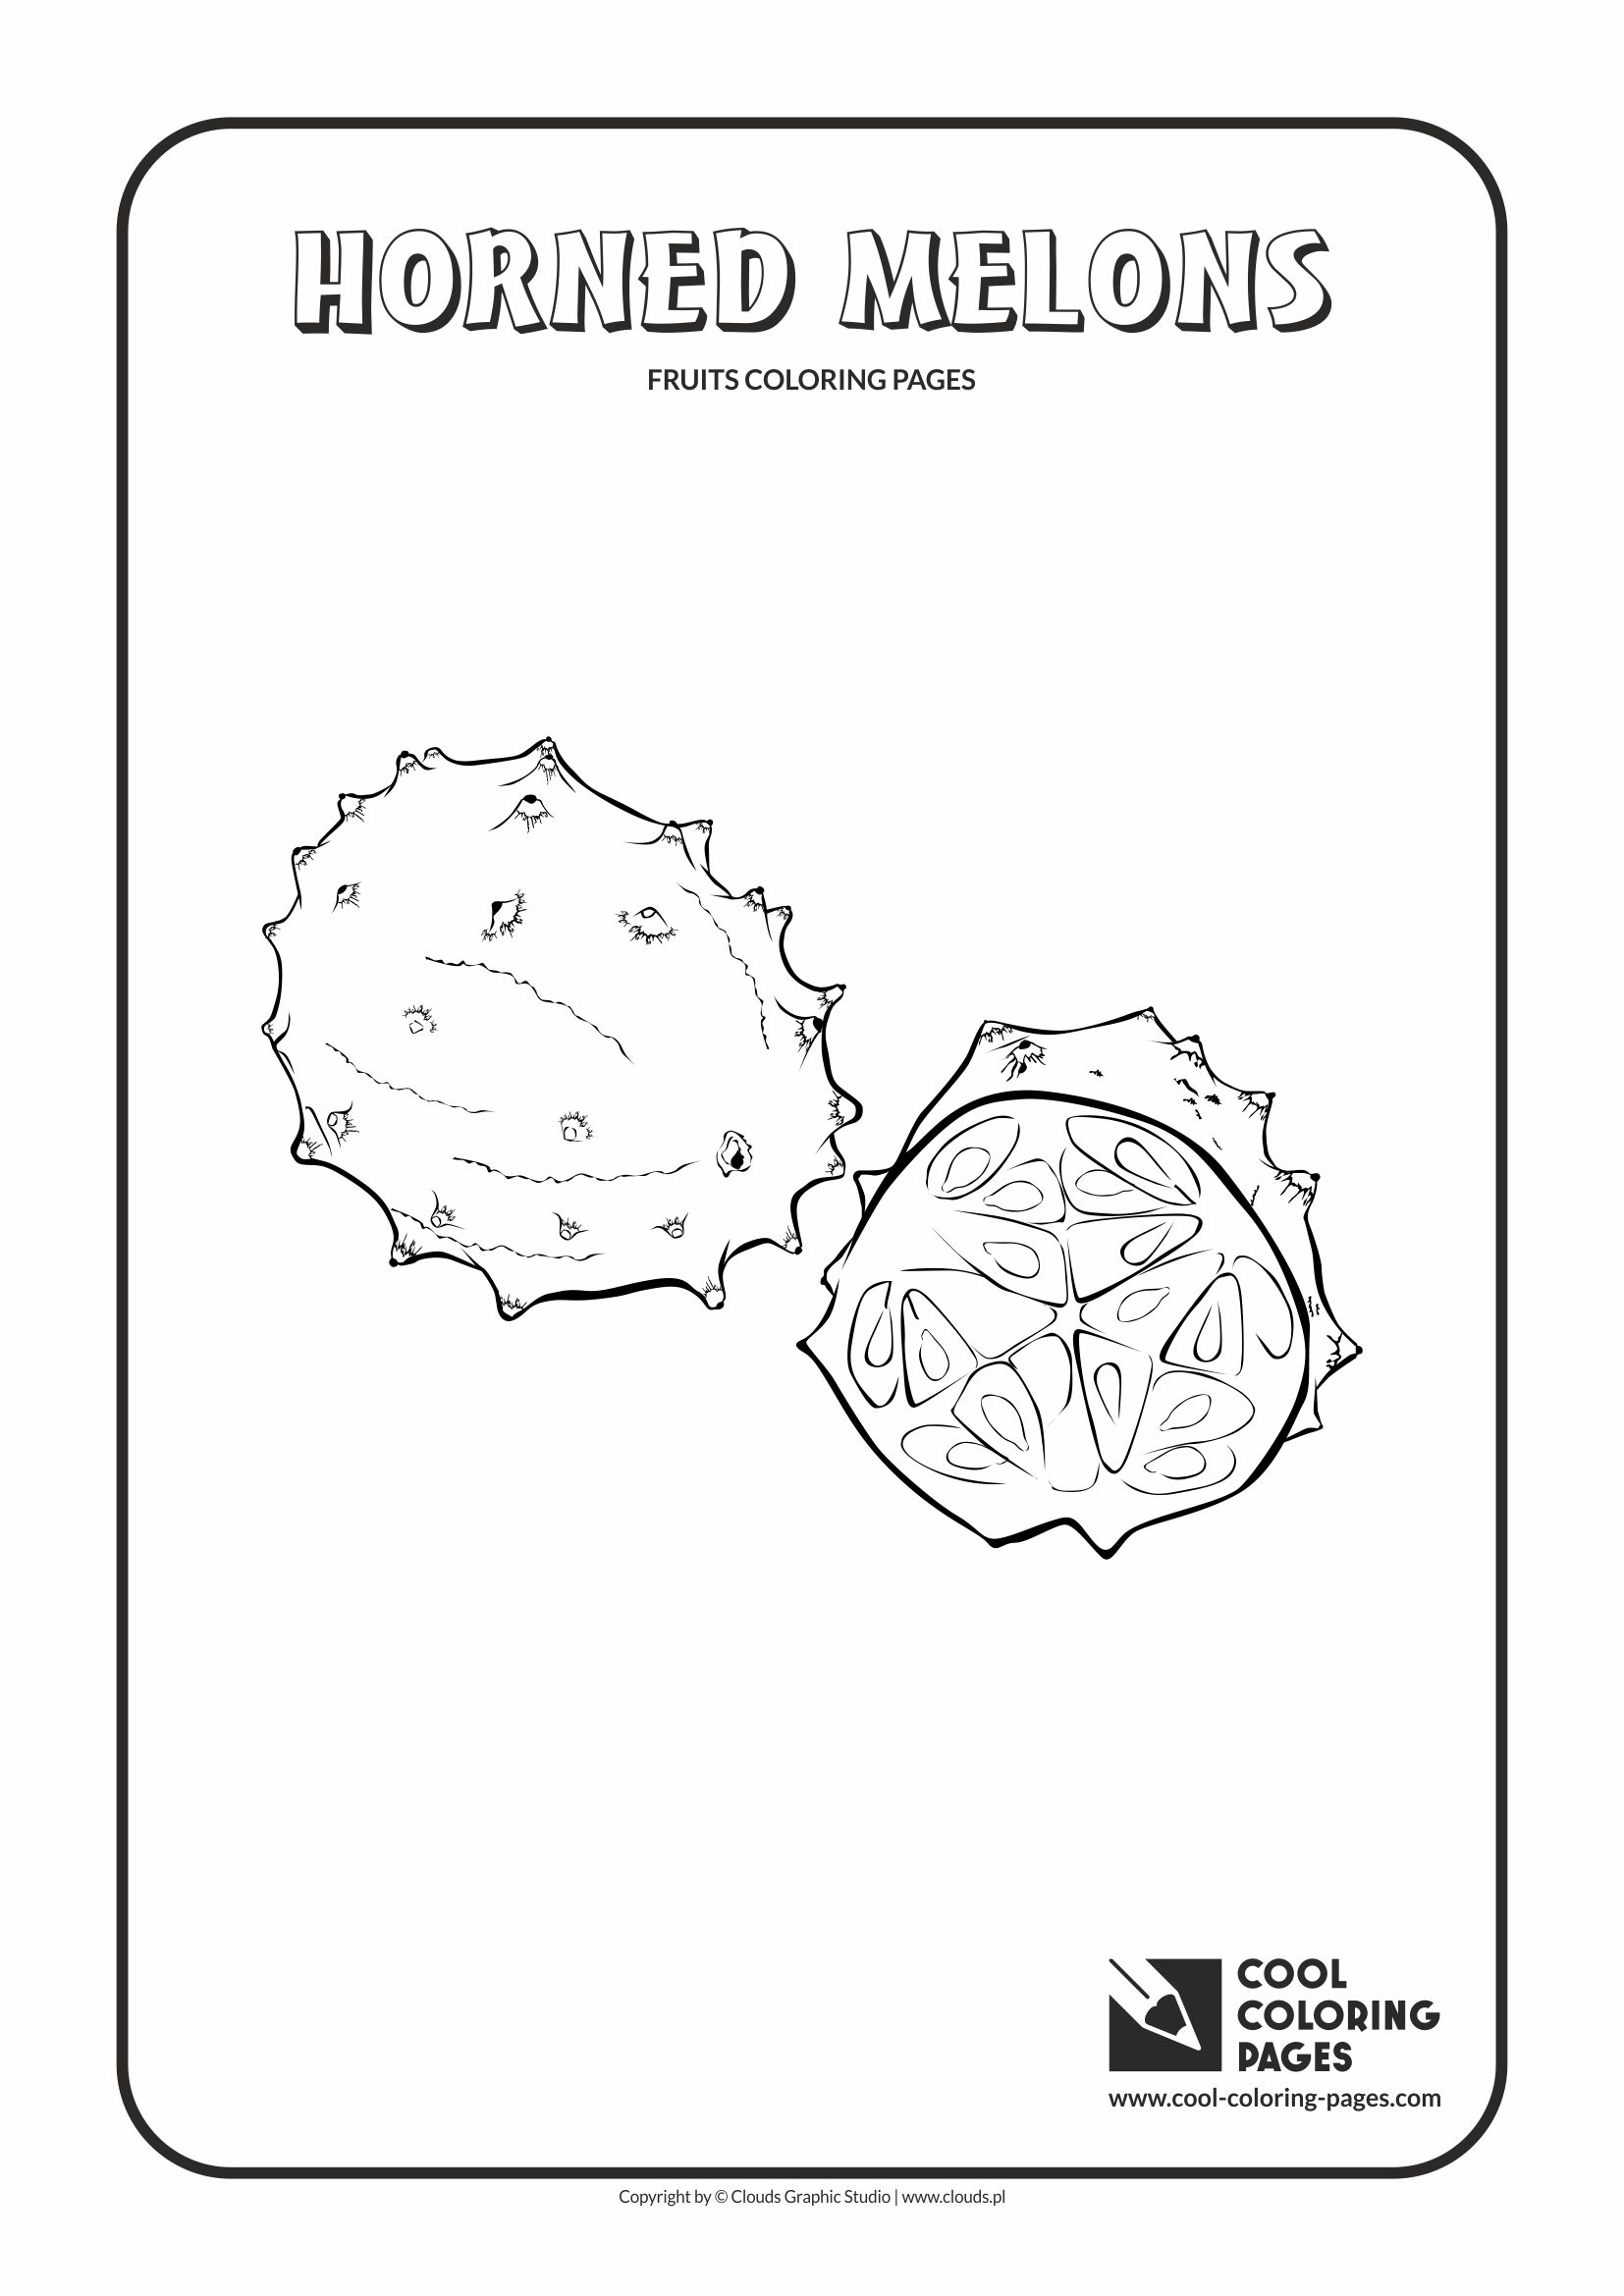 Cool Coloring Pages - Plants / Horned melons / Coloring page with horned melons